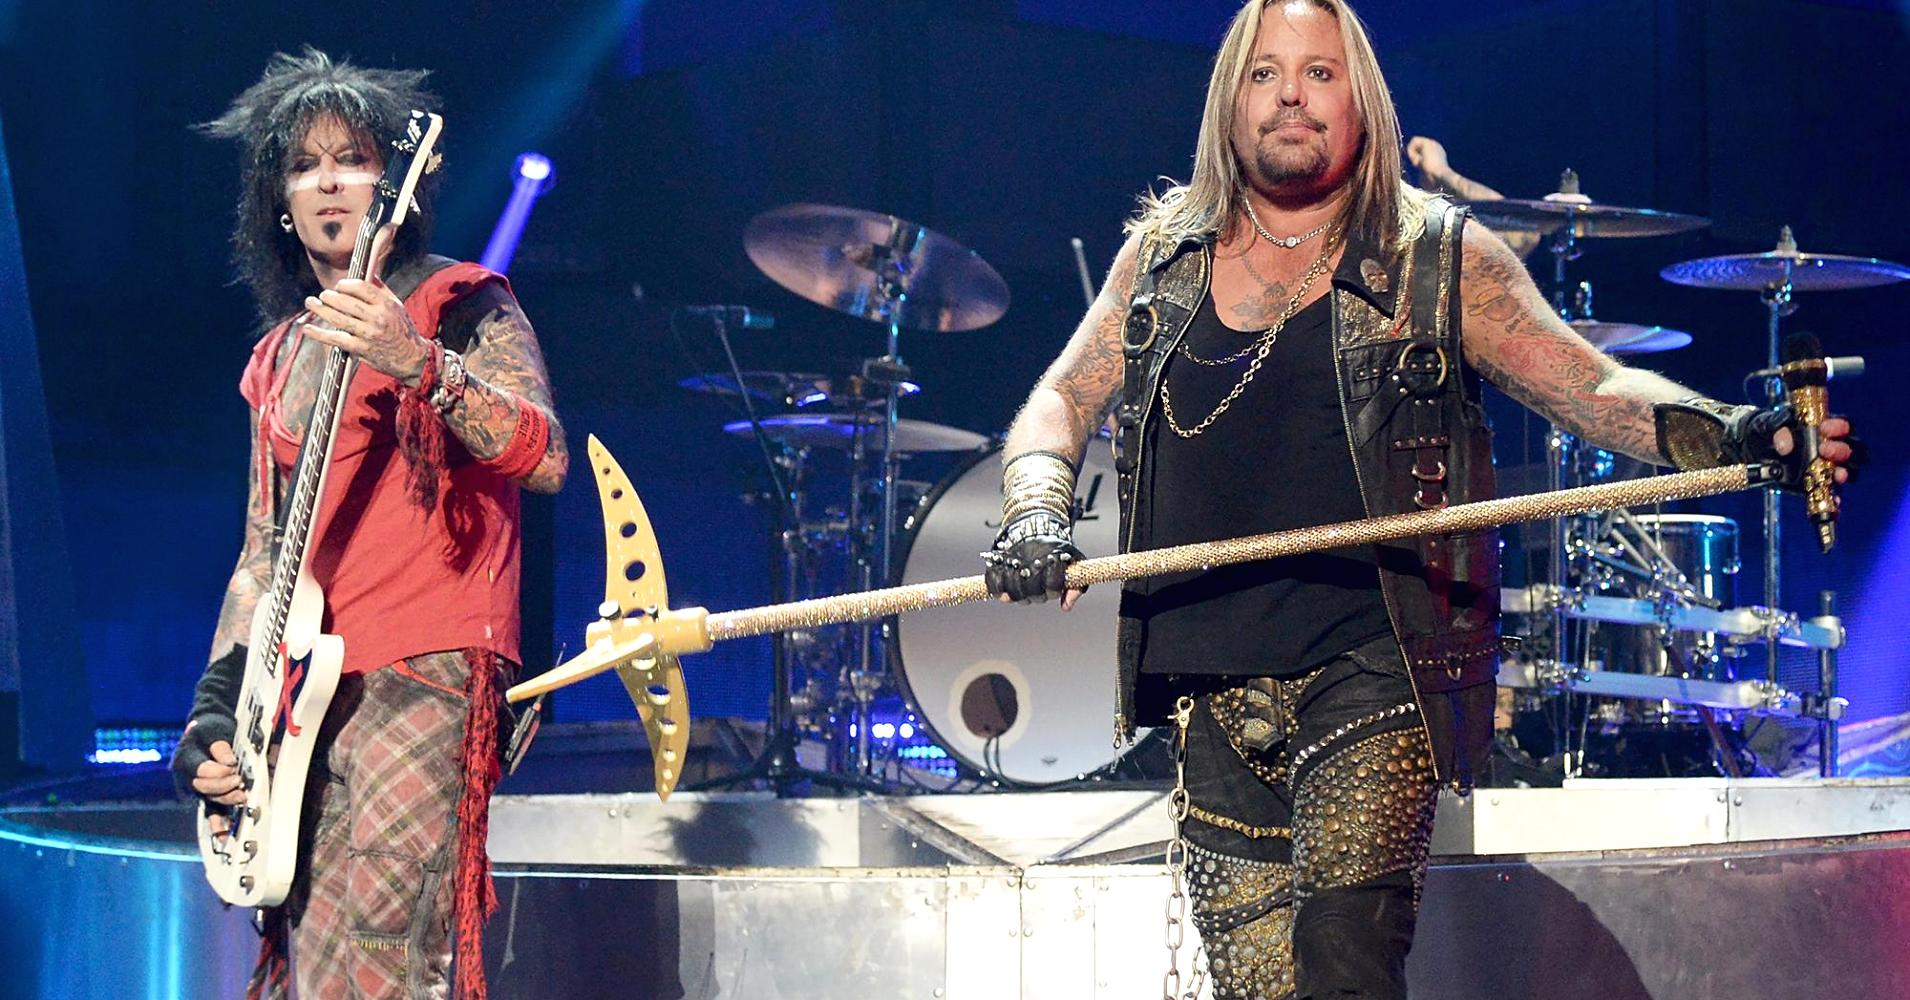 Motley Crue during The Final Tour